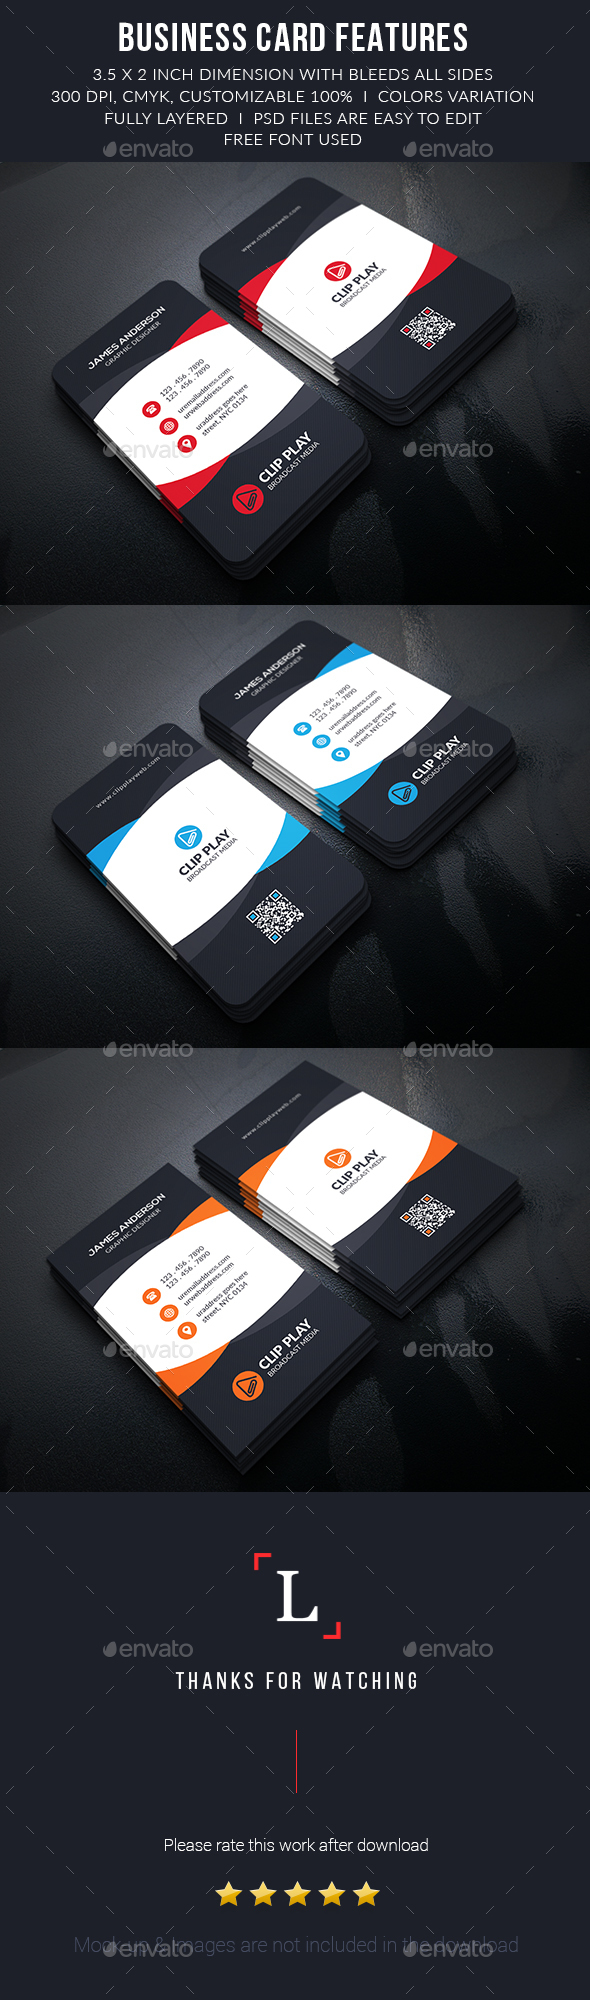 Clipplay Corporate Business Cards - Business Cards Print Templates